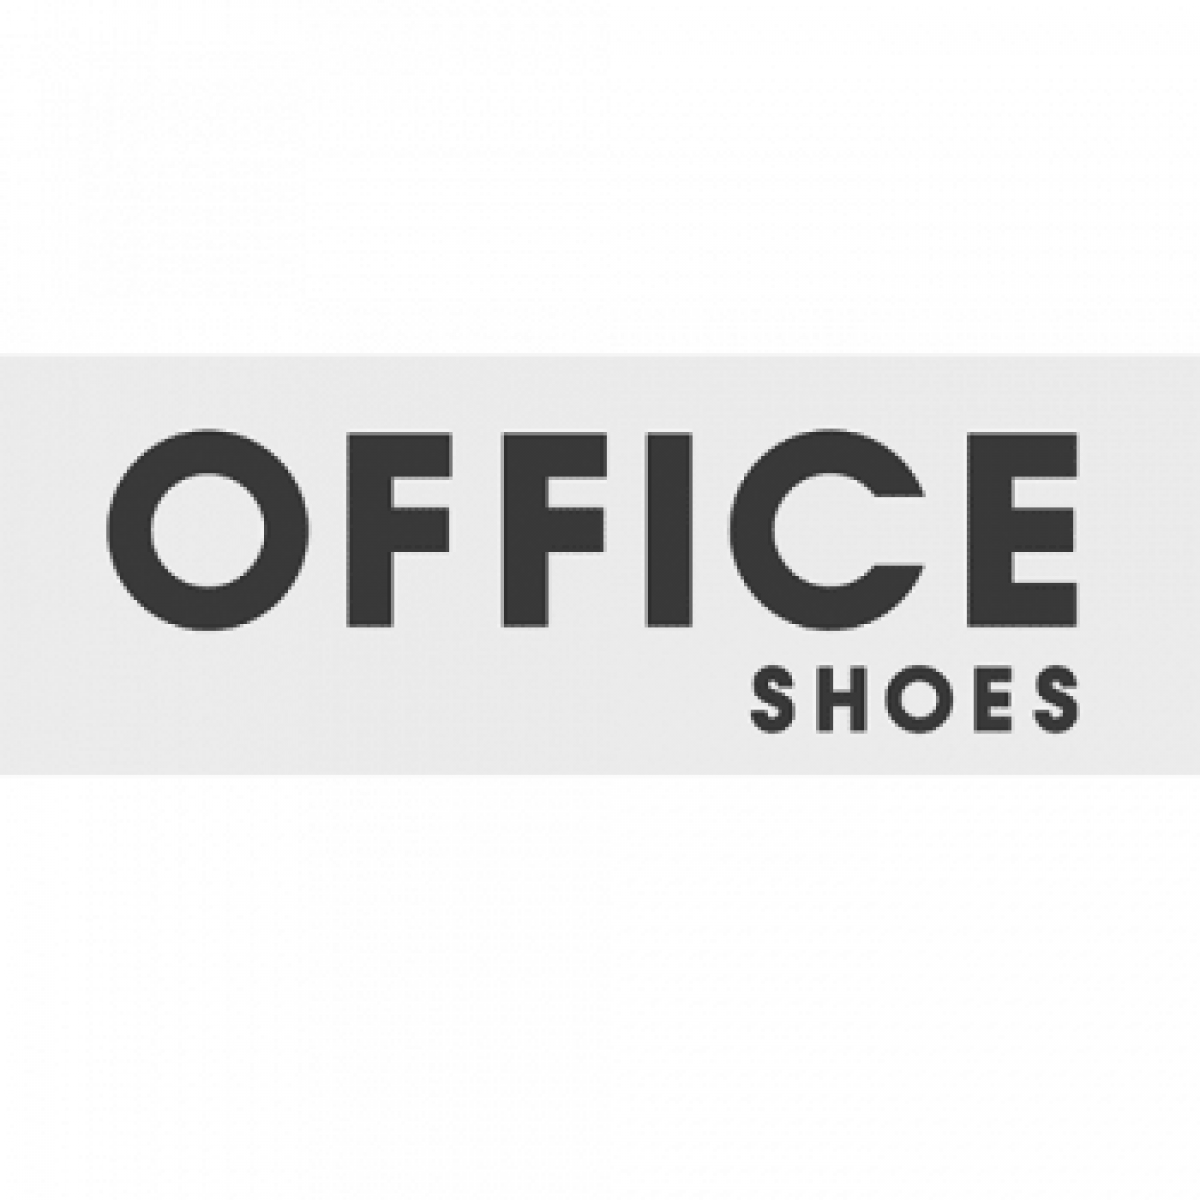 Bilbord za kompaniju Office shoes